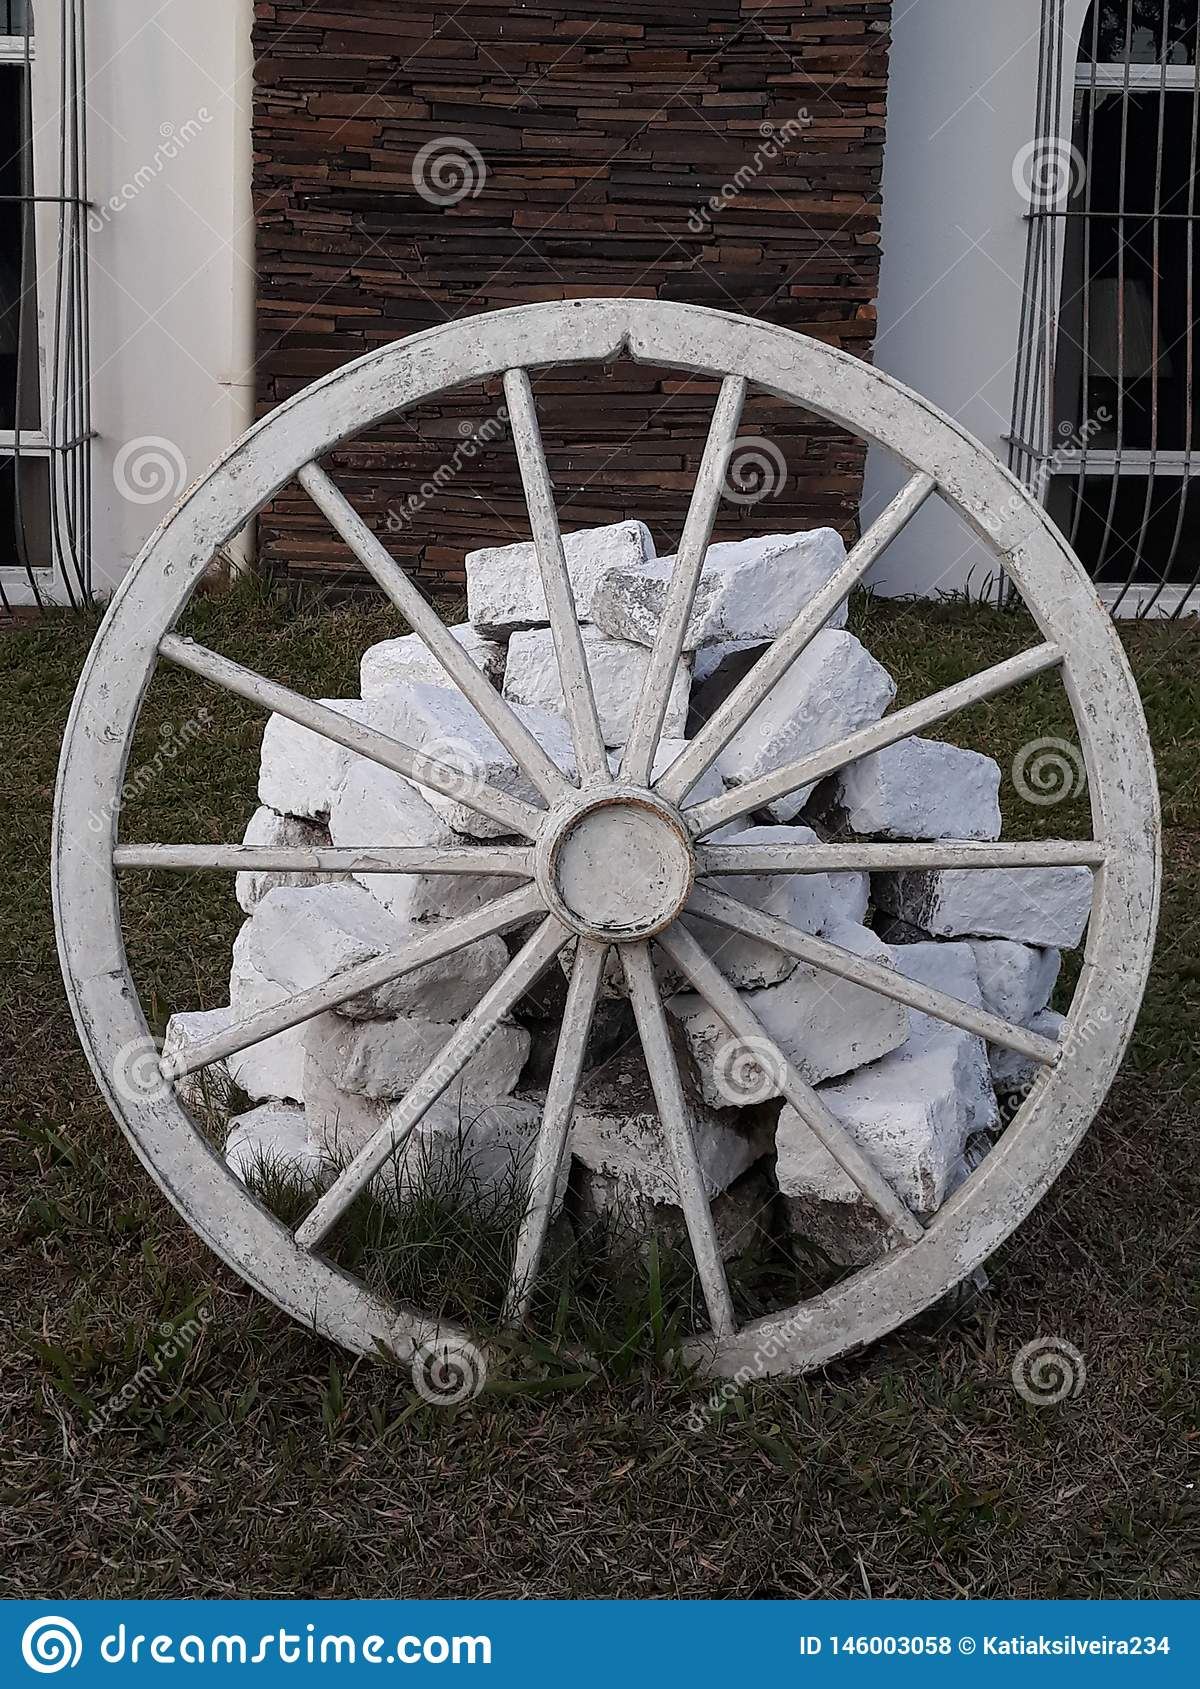 992 Wheel Decorating Photos Free Royalty Free Stock Photos From Dreamstime